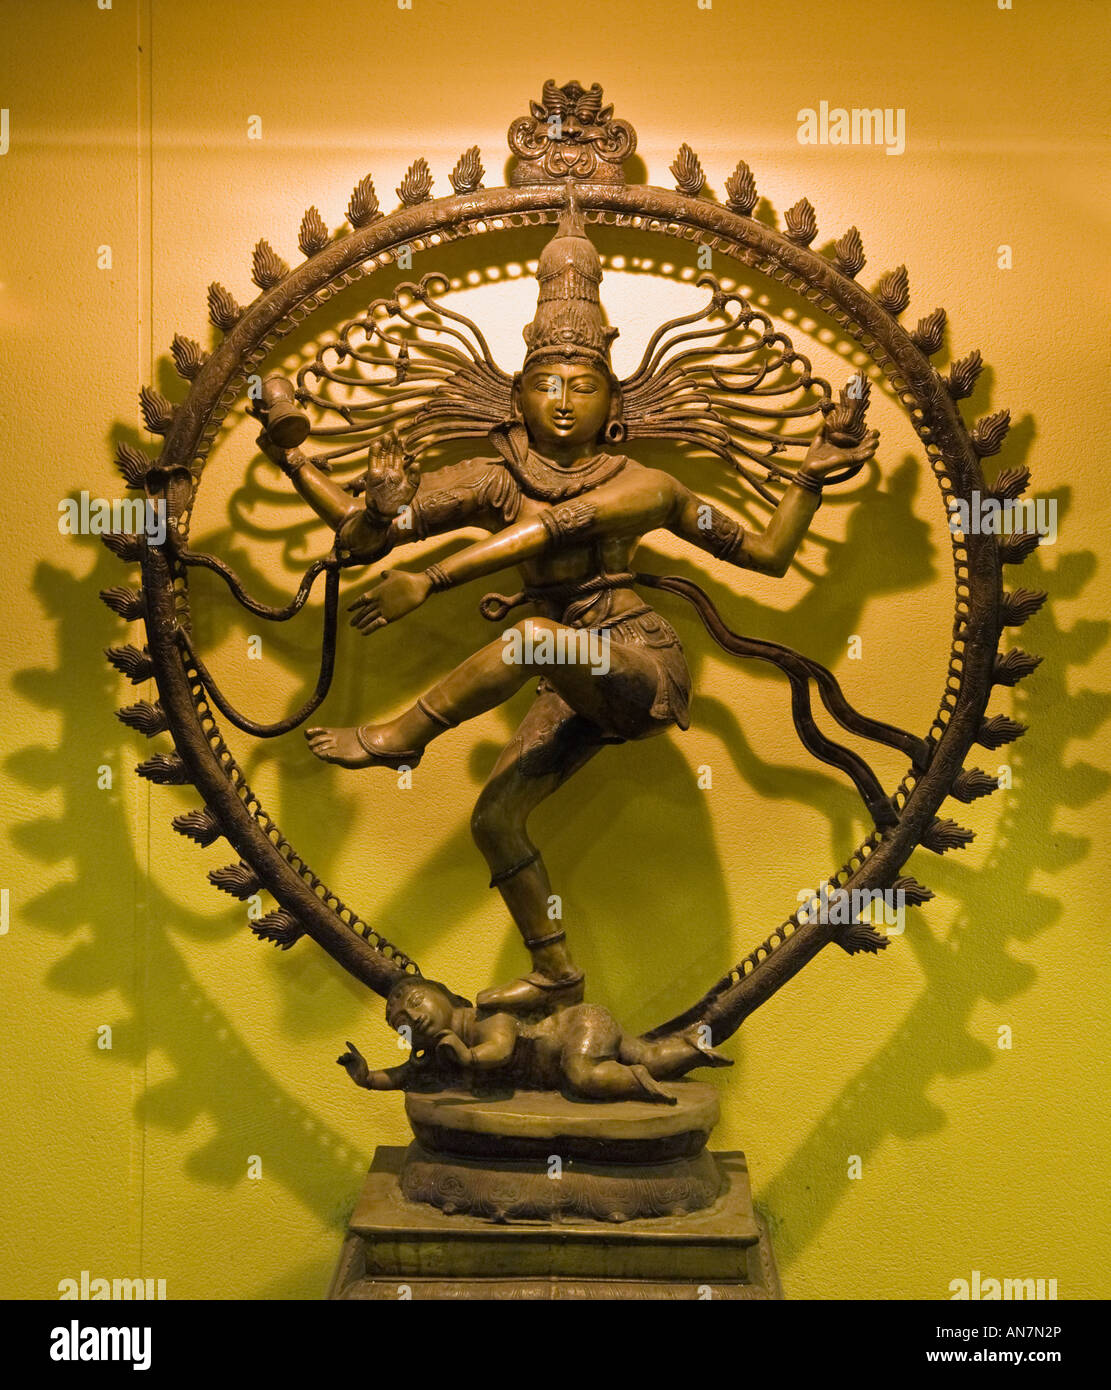 Shiva in dancing posture of Nataraja the King of Dance - Stock Image